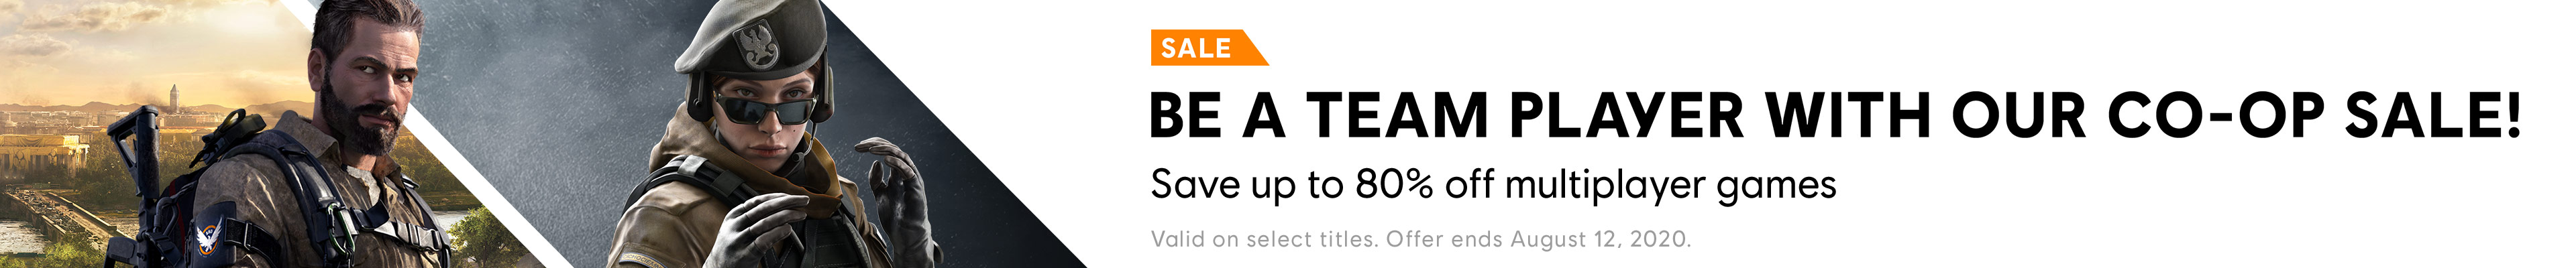 Coop Sale Category banner